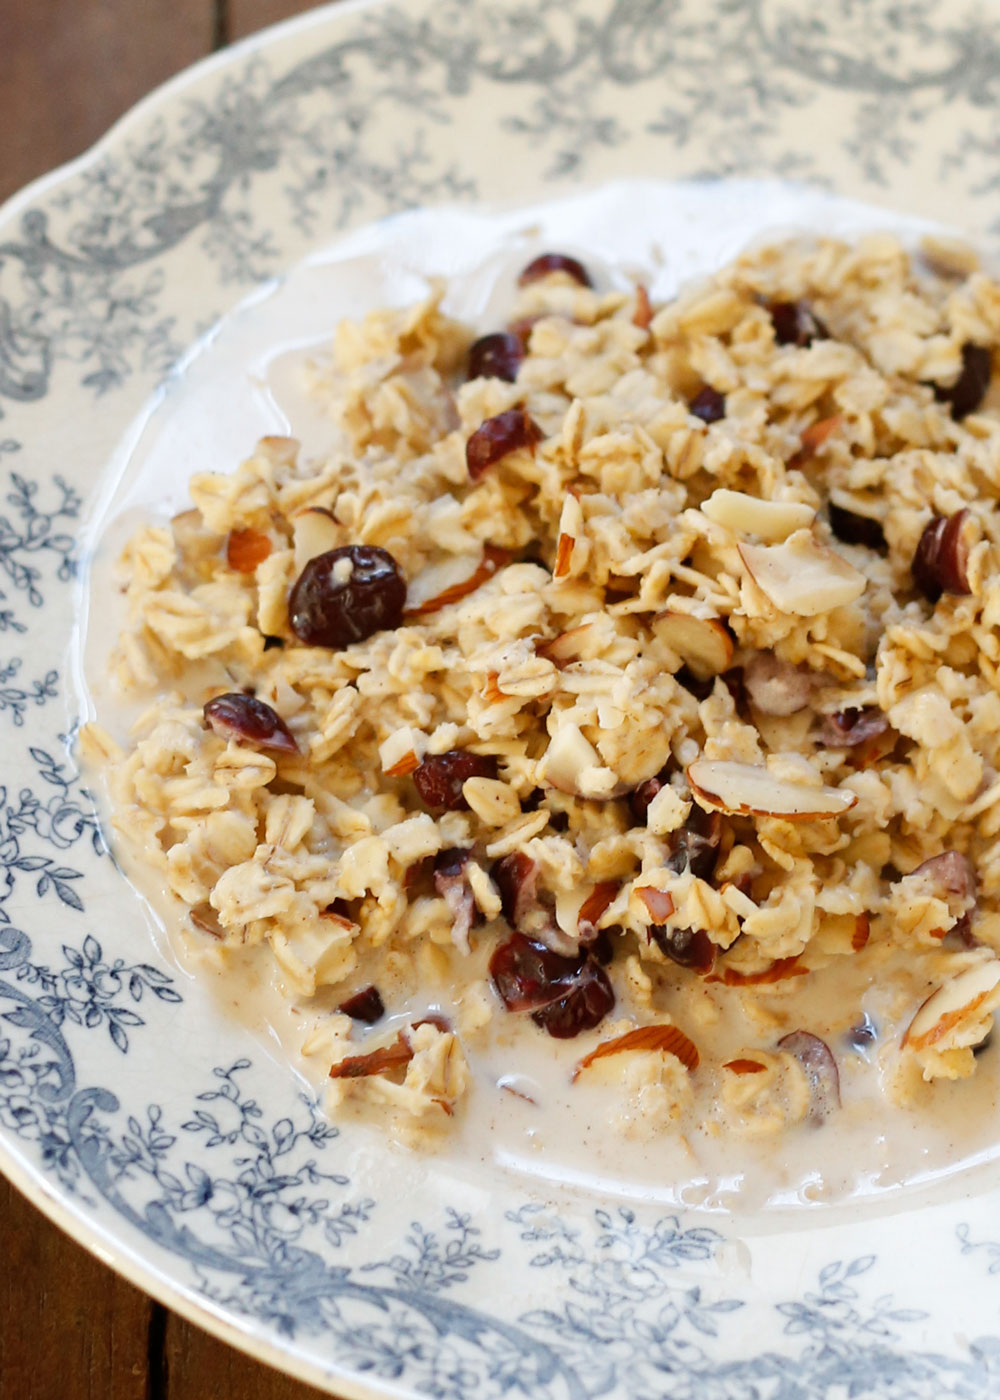 Slow Cooker Cranberry Almond Oatmeal | get the recipe at barefeetinthekitchen.com